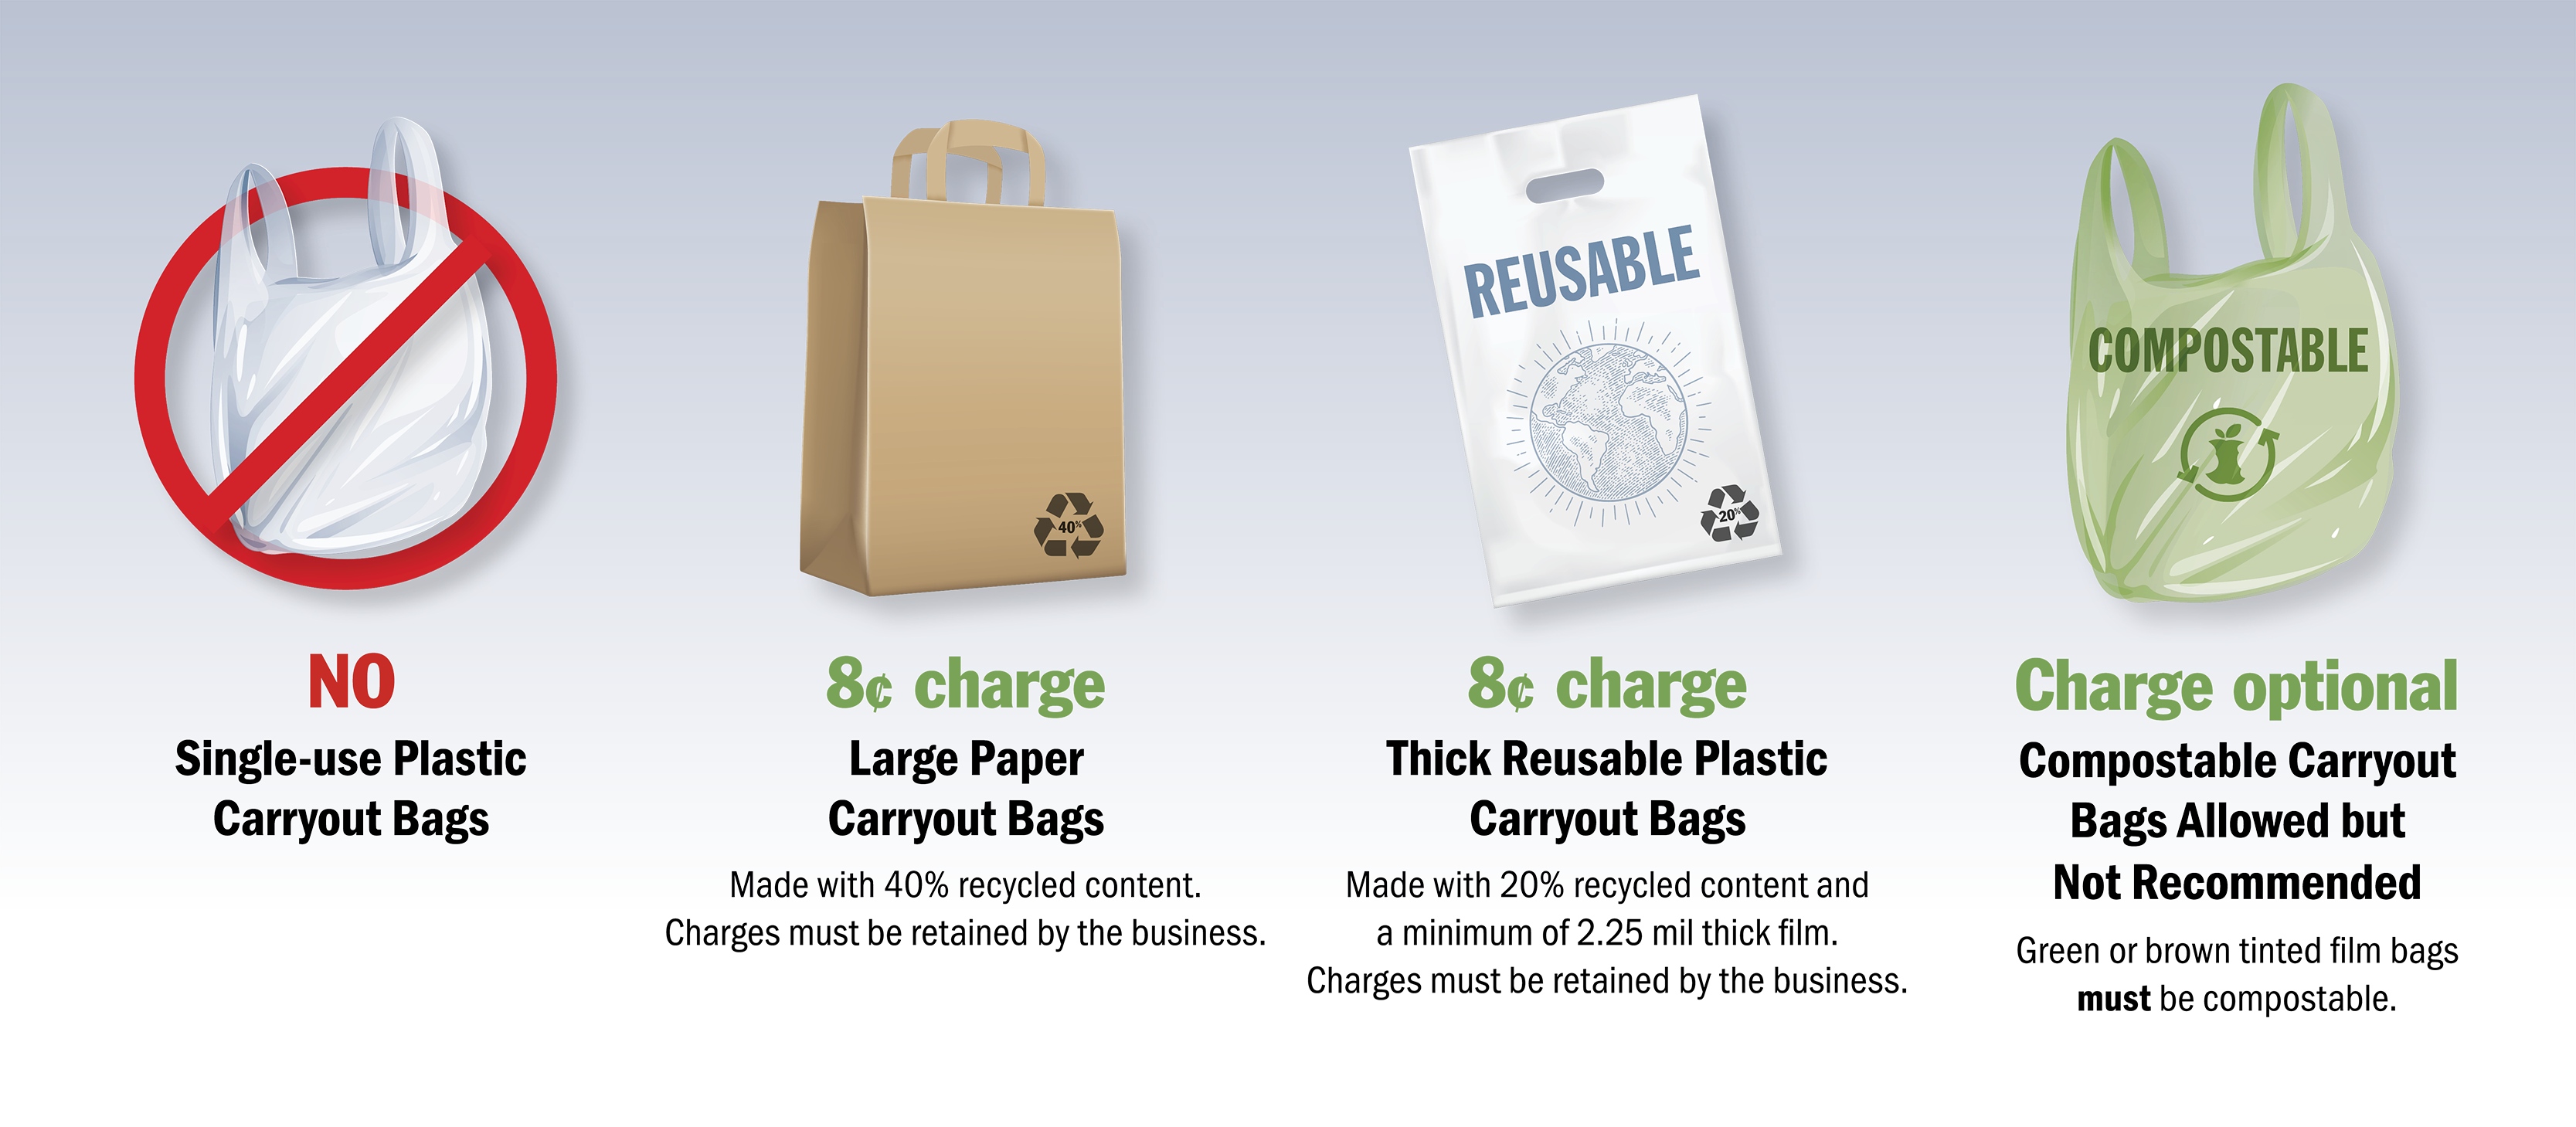 Washington State plastic bag policy requirements